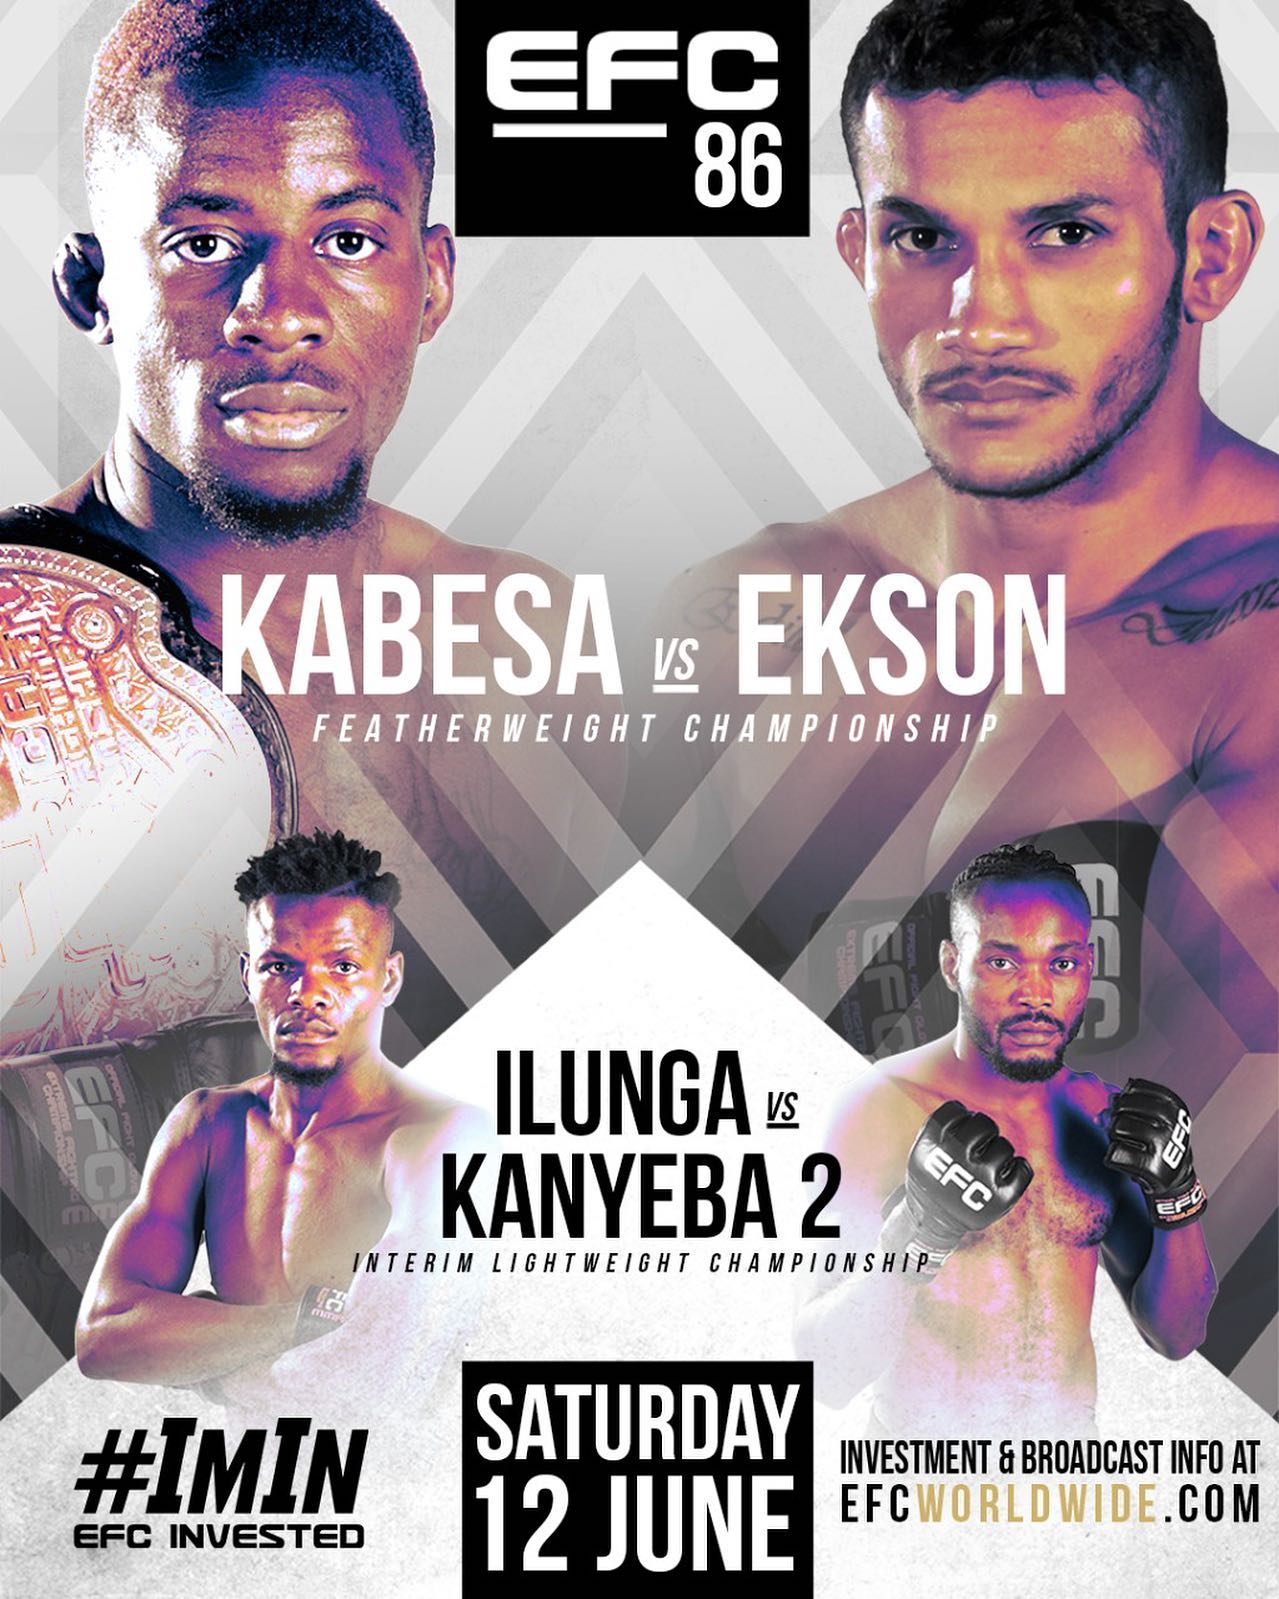 EFC 86 takes place this Saturday, 12 June, and sees Igeu Kabesa return to the MMA Hexagon to take on Reinaldo Ekson in the Featherweight Title Fight, and Alain Ilunga goes head-to-head with Anicet Kanyeba for the interim lightweight title.